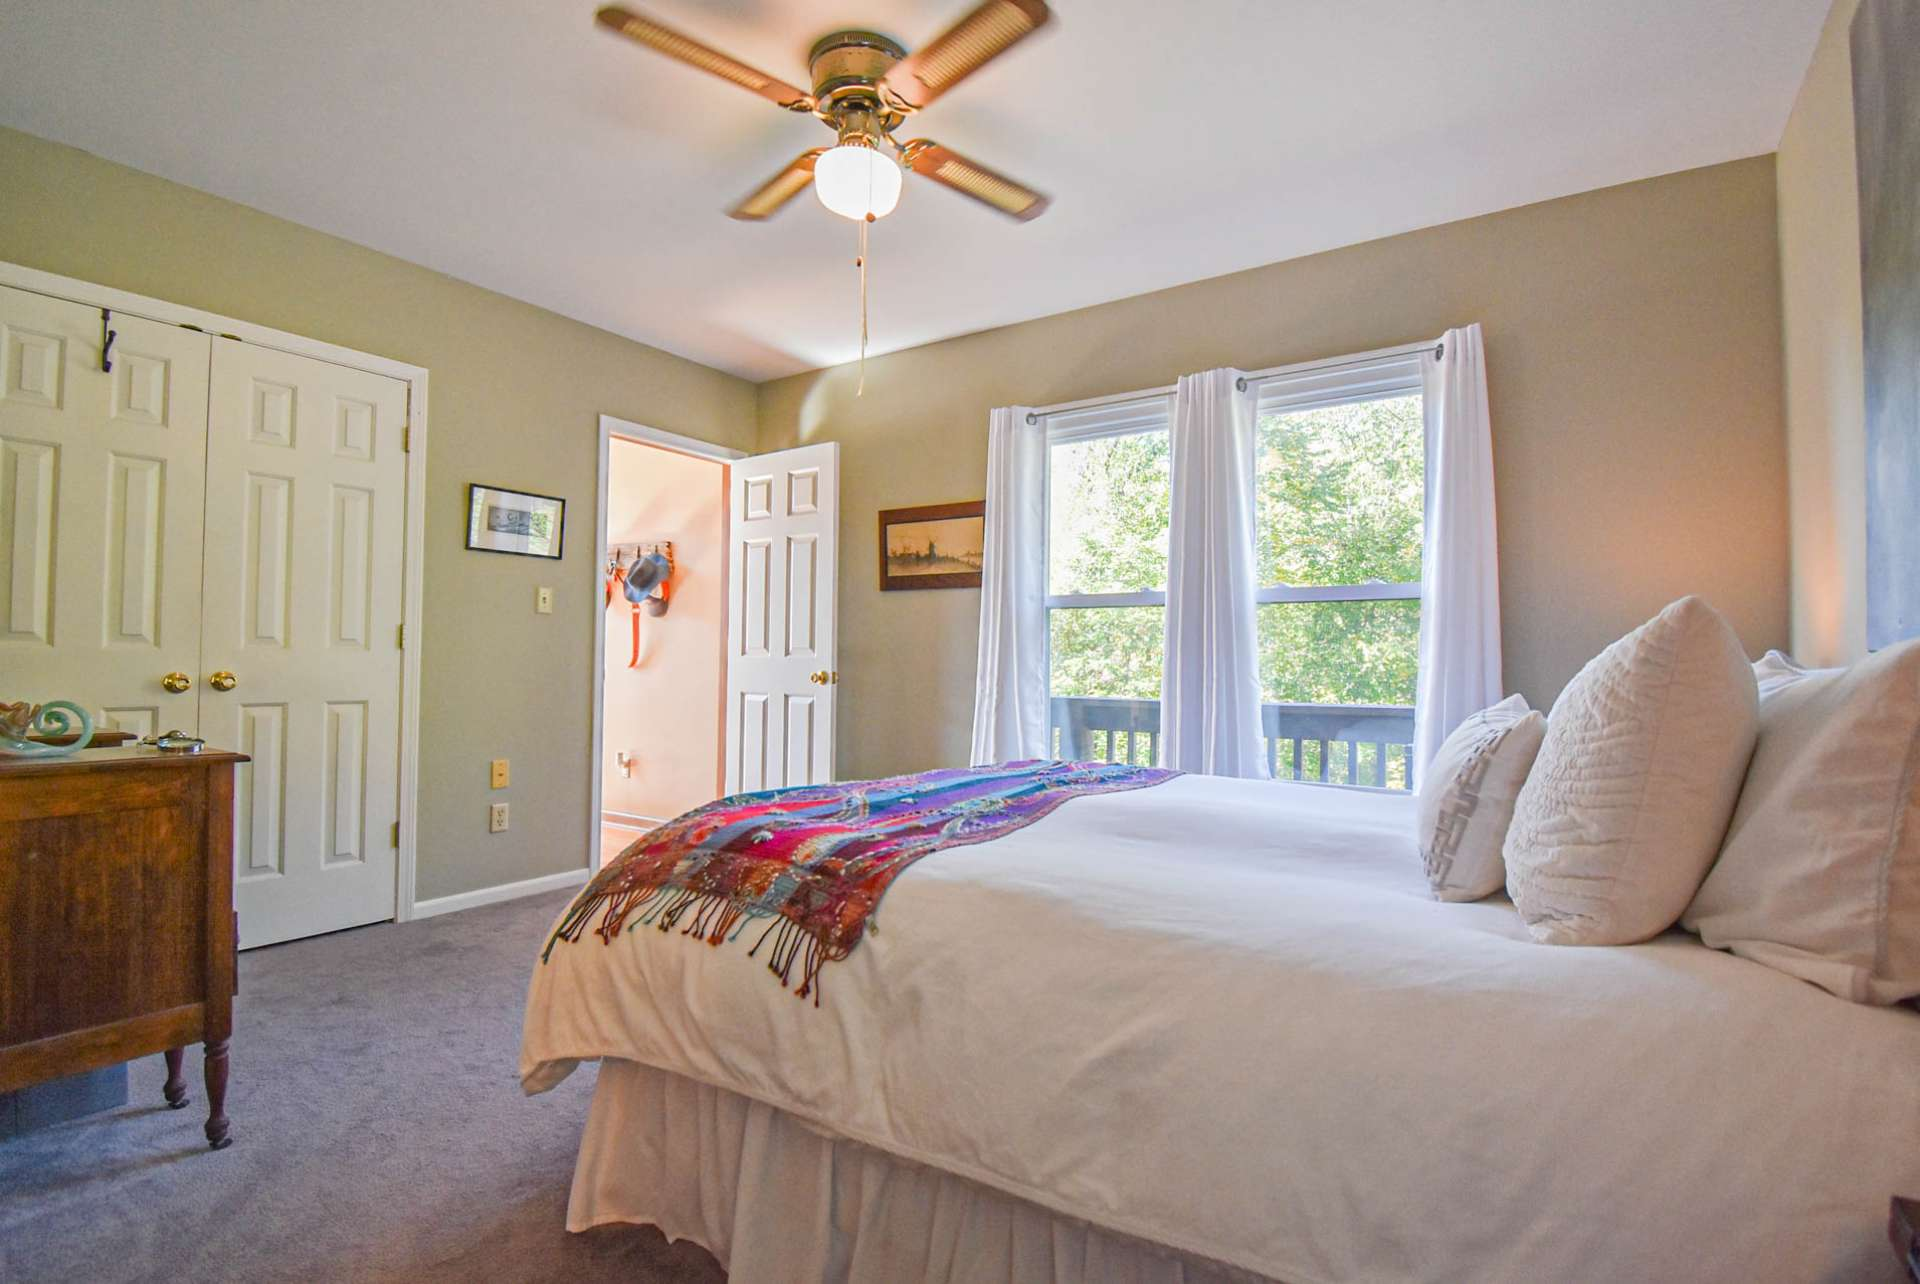 This bedroom also features plenty of natural light.